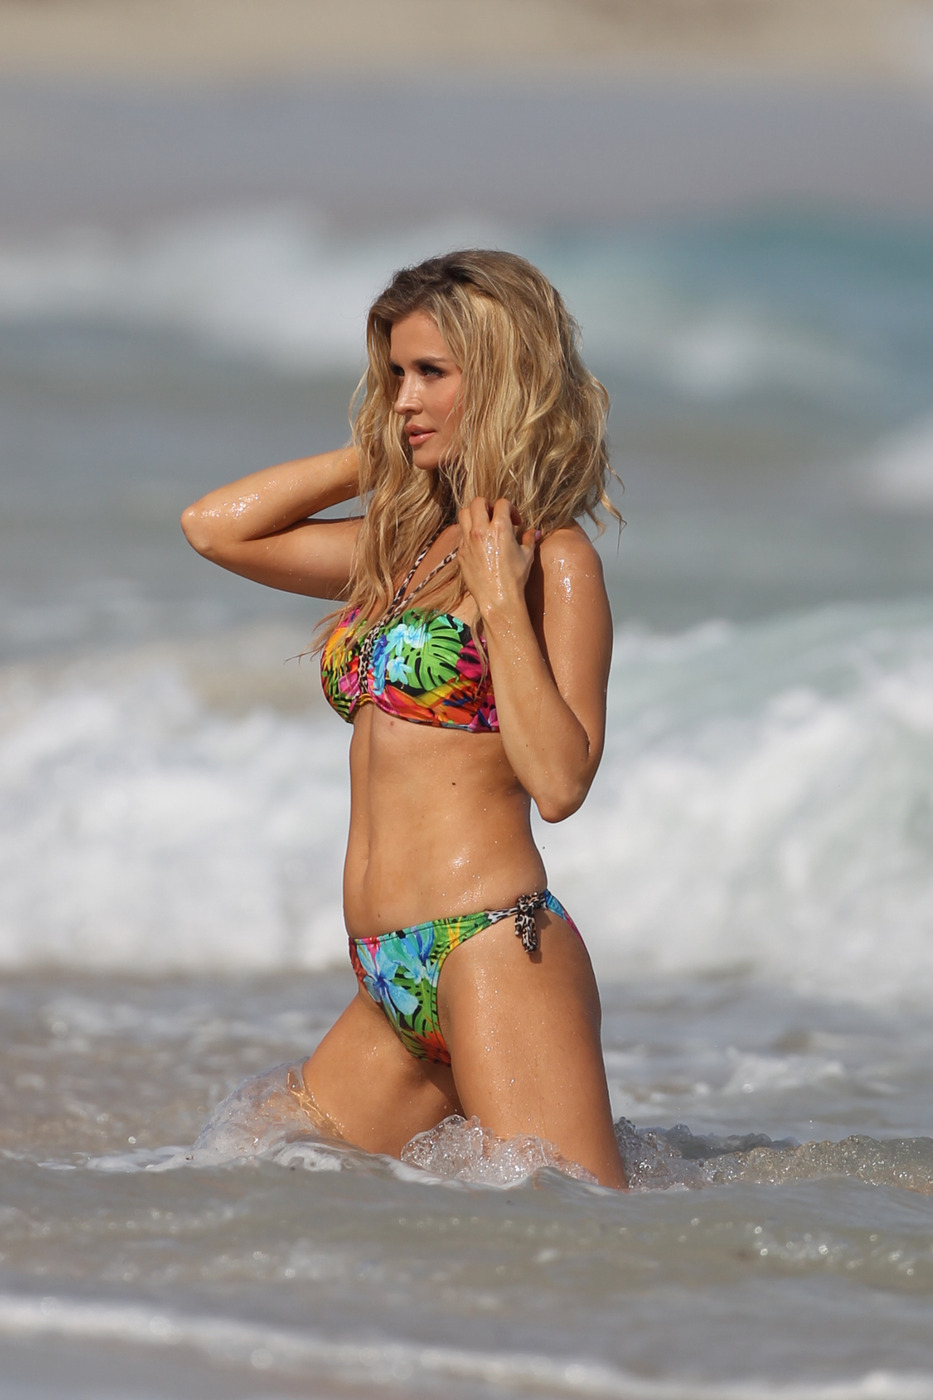 Joanna Krupa shows off her curves in her 2015 Esotiq swimwear line, during a photo shoot on the beach